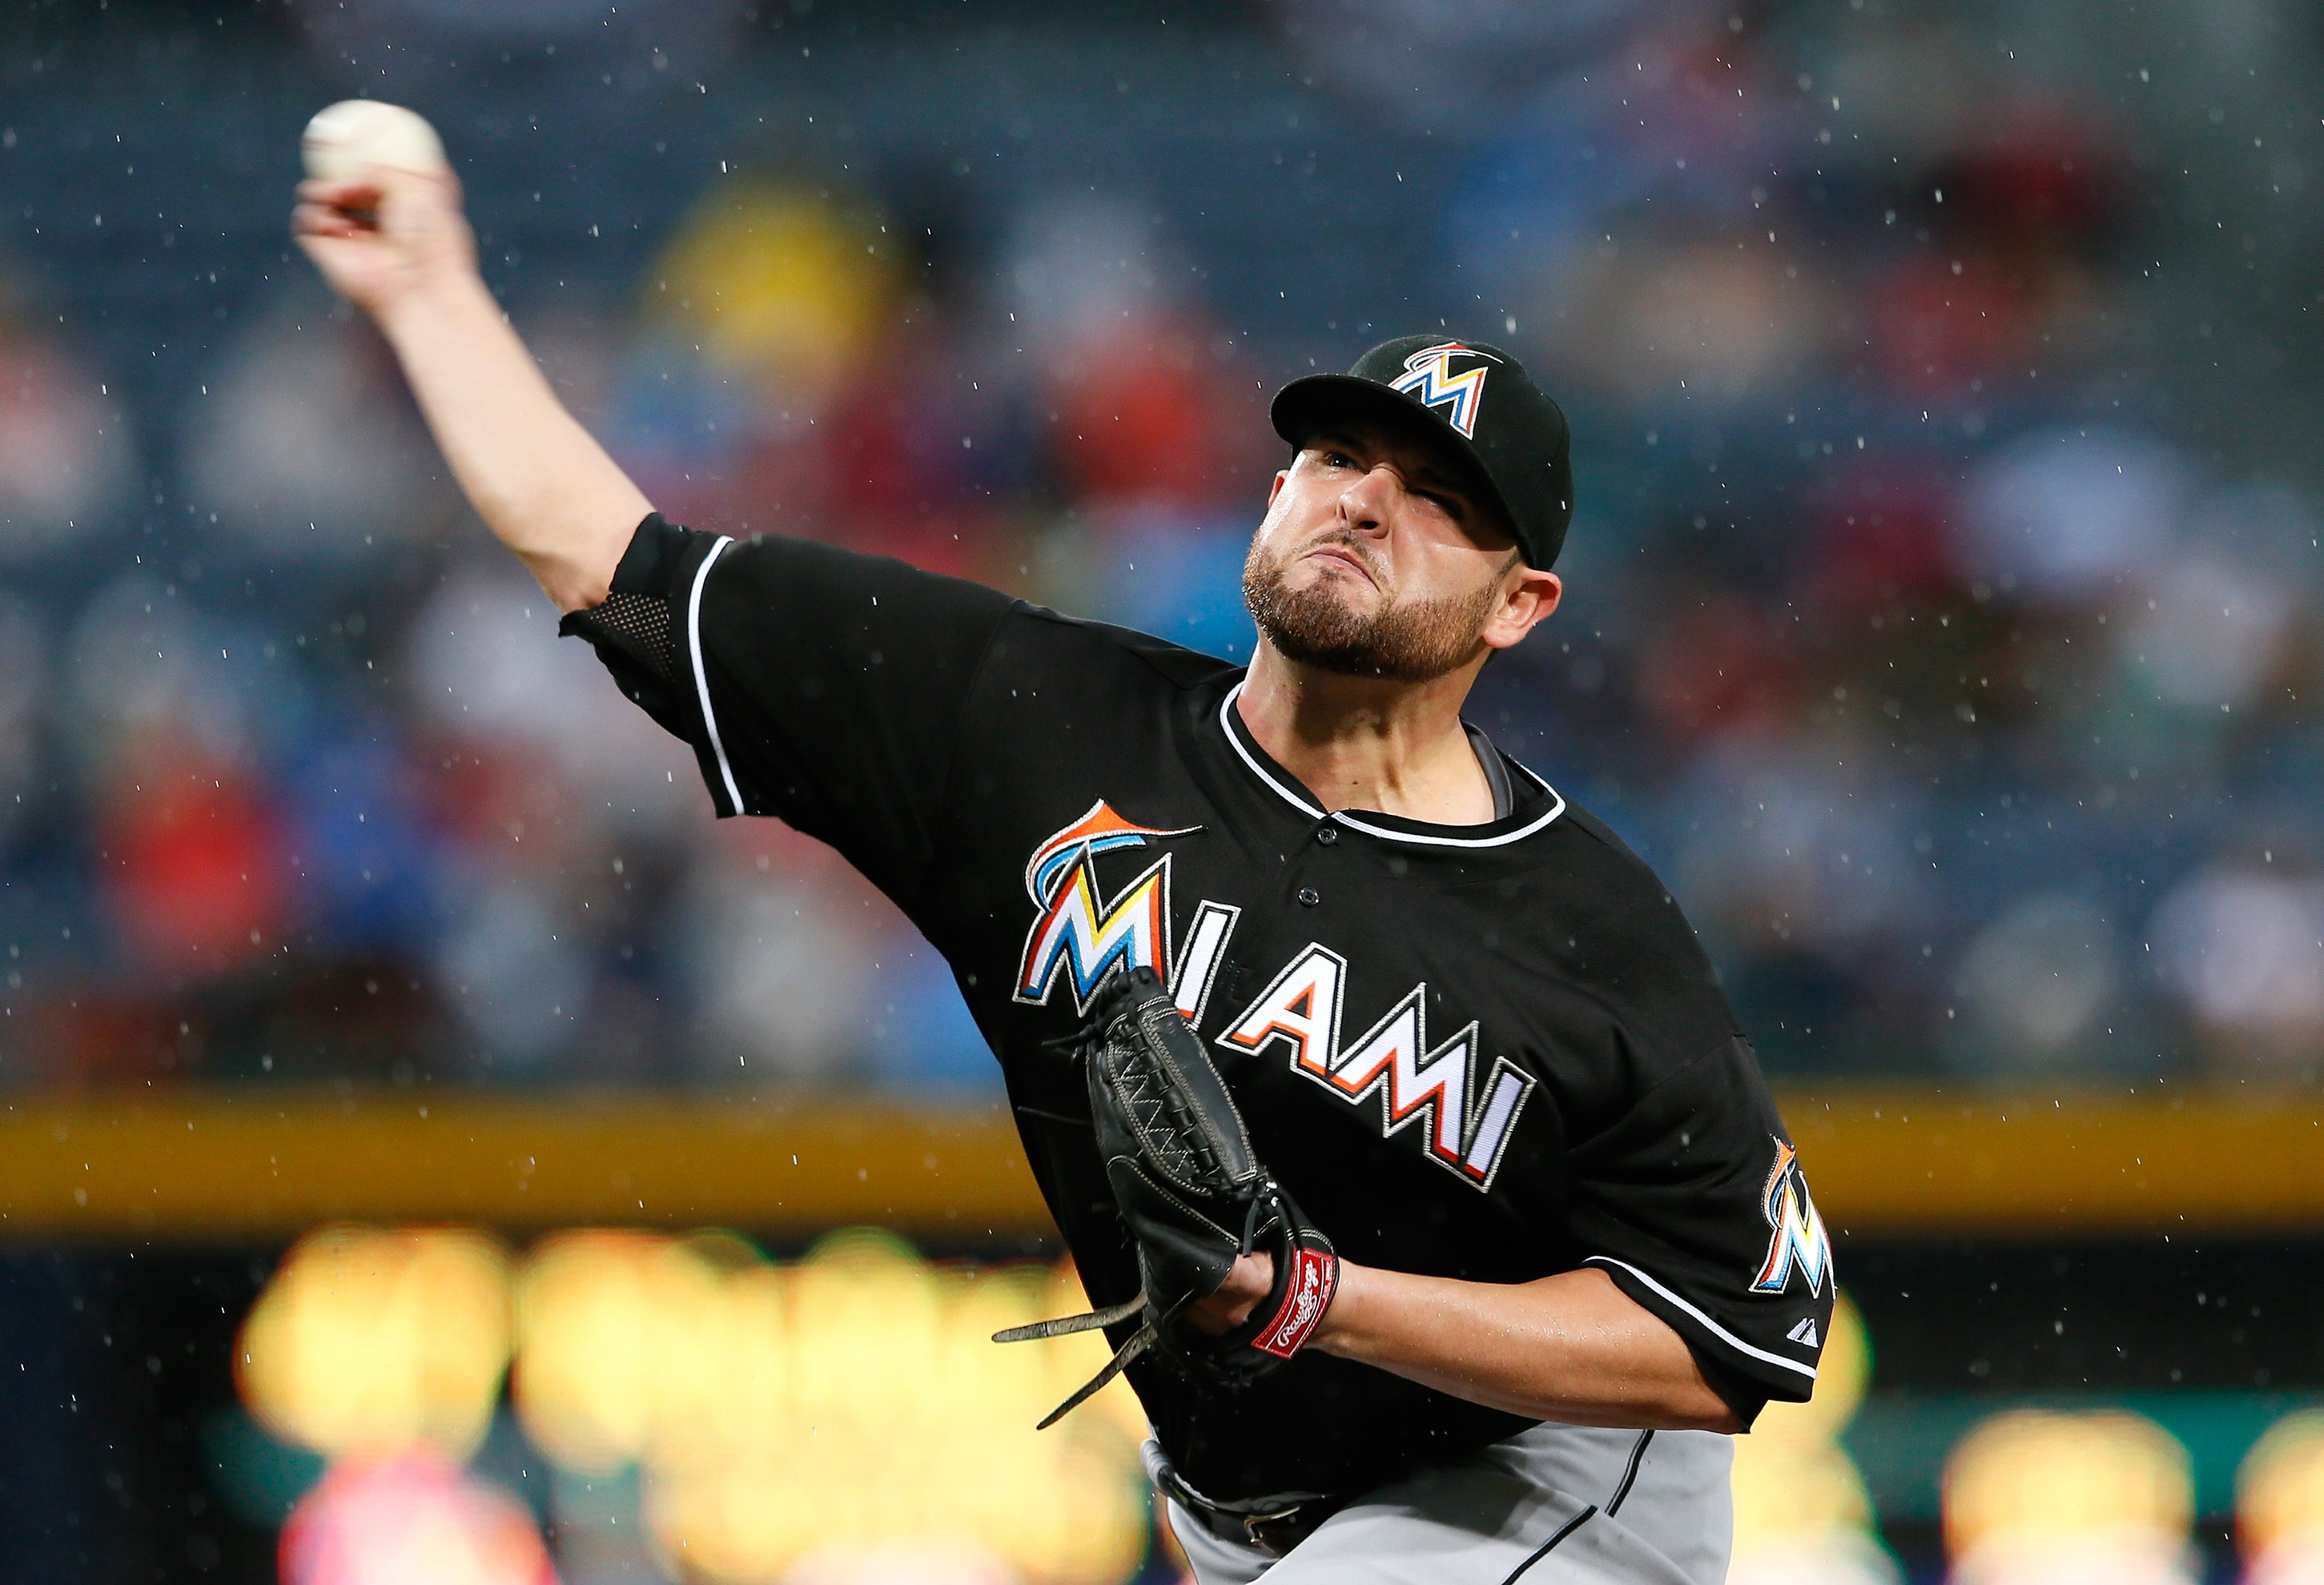 Right-hander Ricky Nolasco hasn't received much run support from the Marlins. (Getty Images)